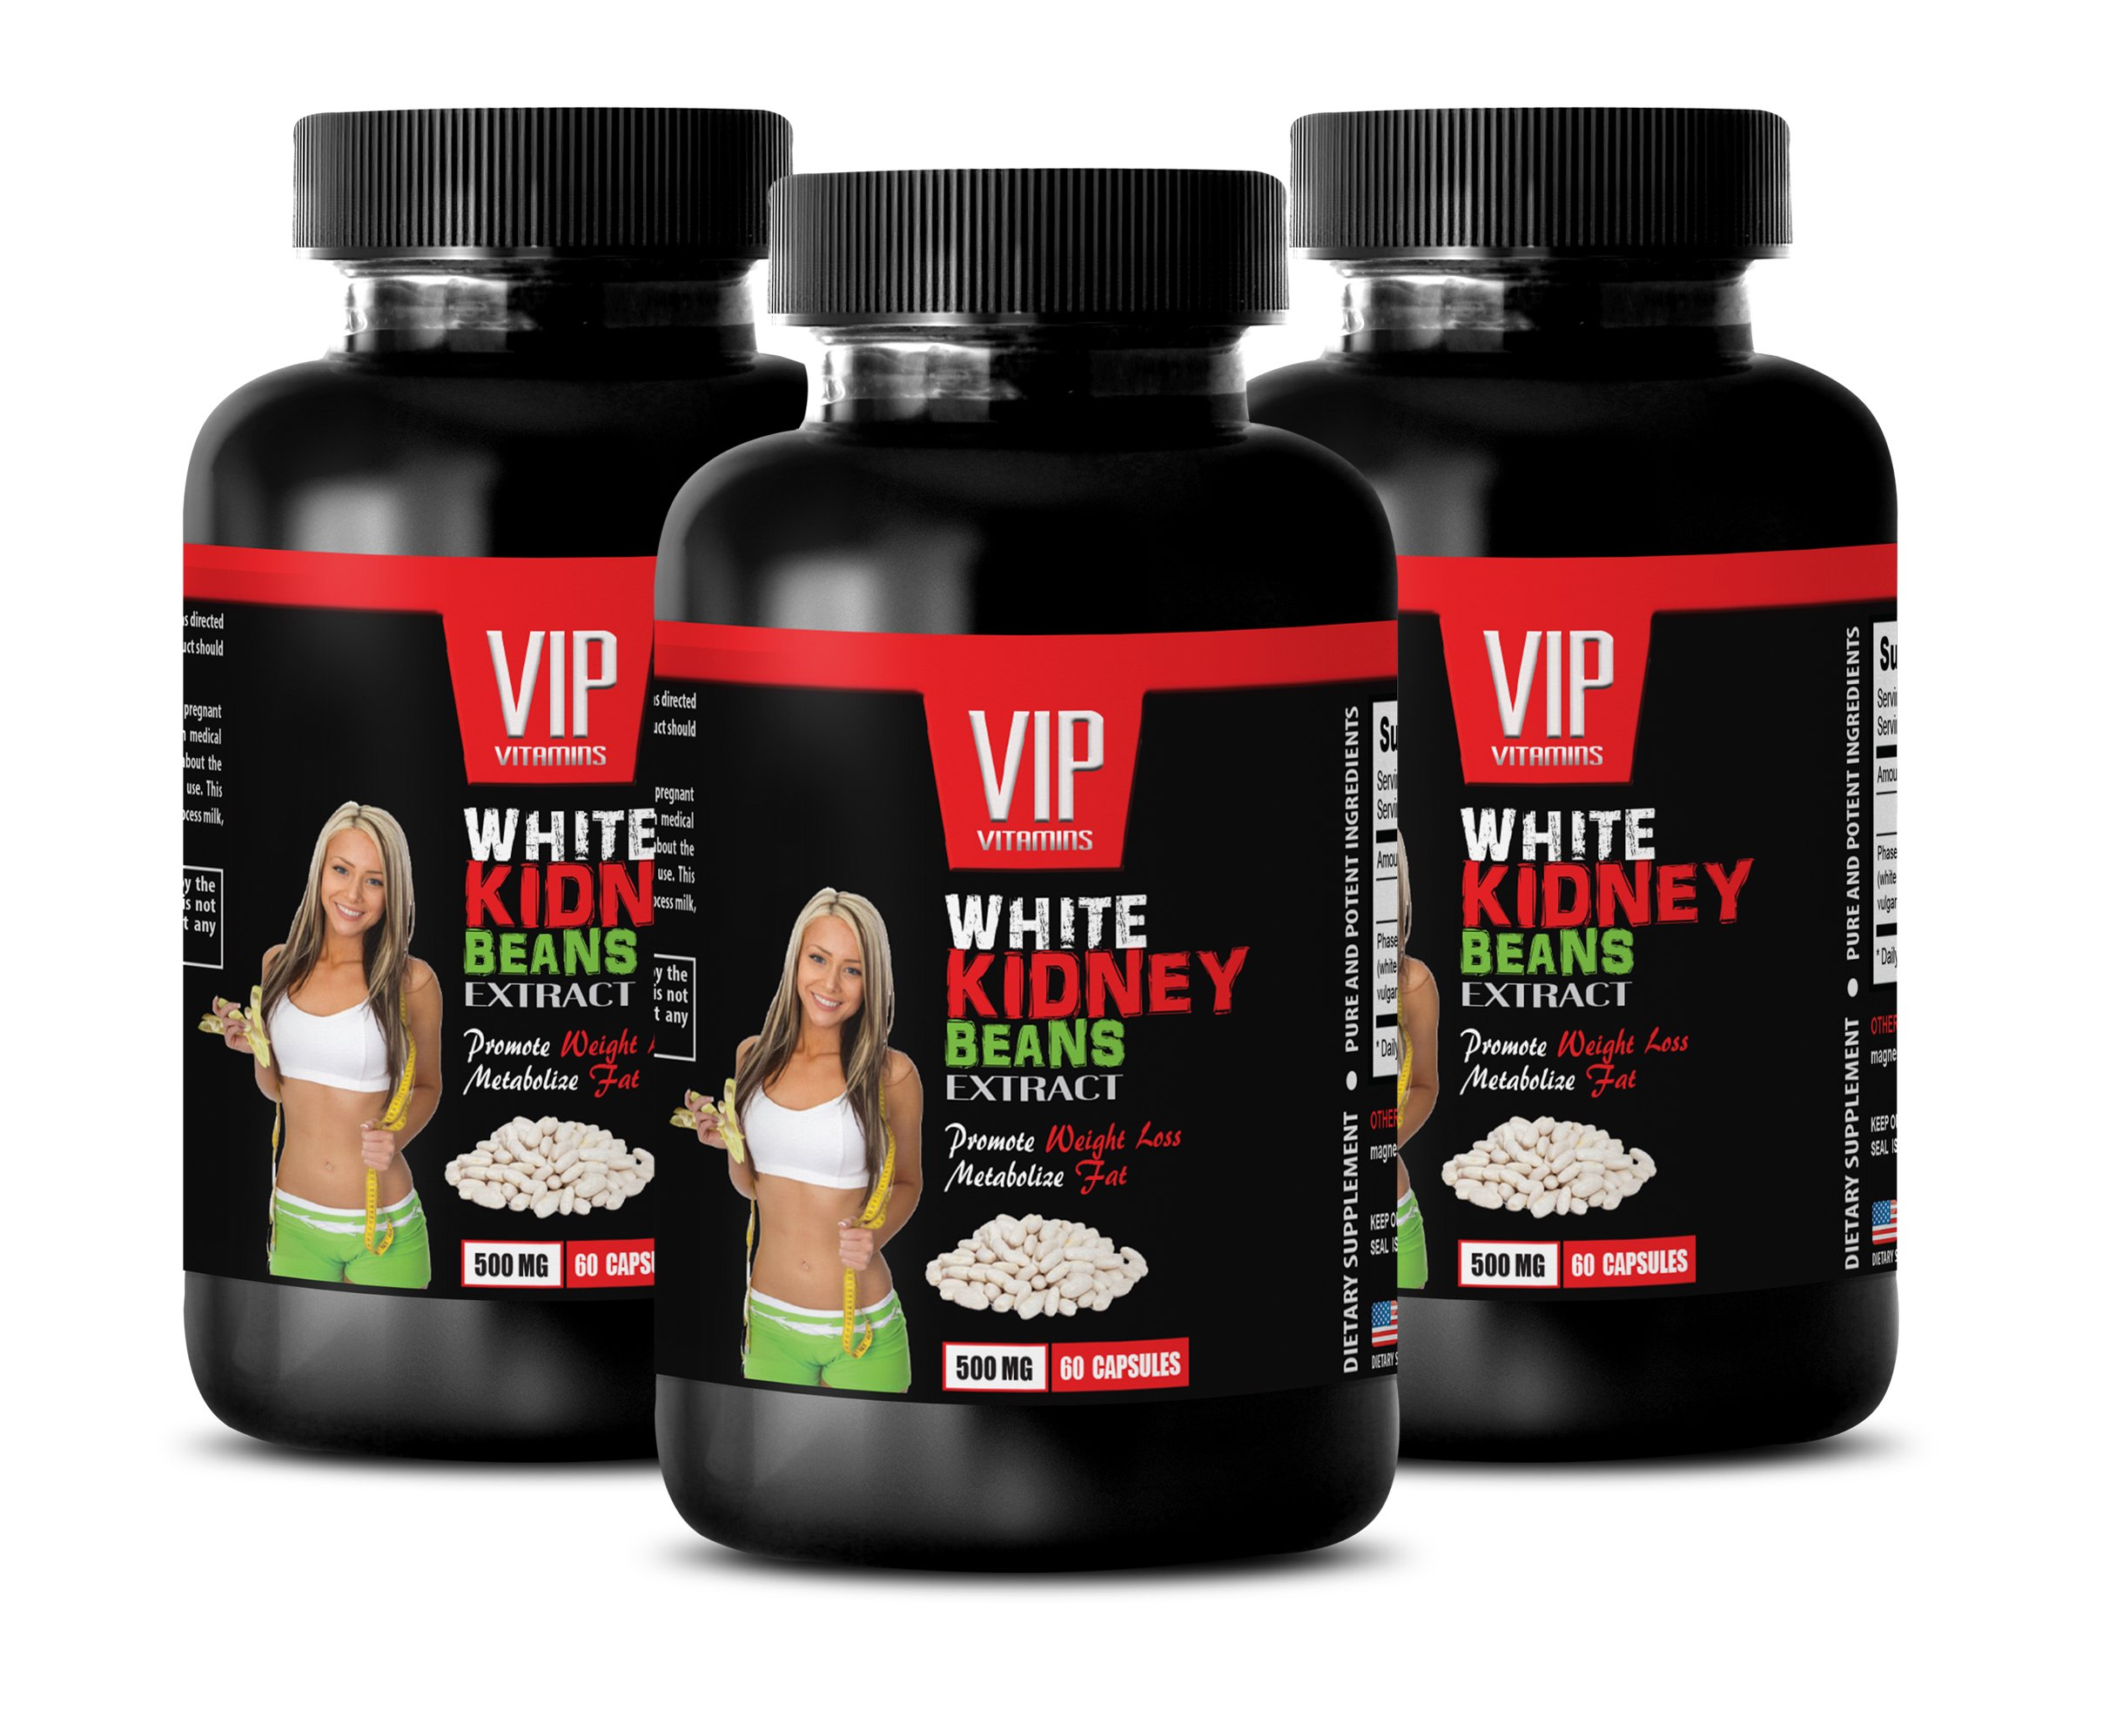 fat burner supplements for women - WHITE KIDNEY BEANS EXTRACT - weight loss beans - 3 Bottles 180 Capsules